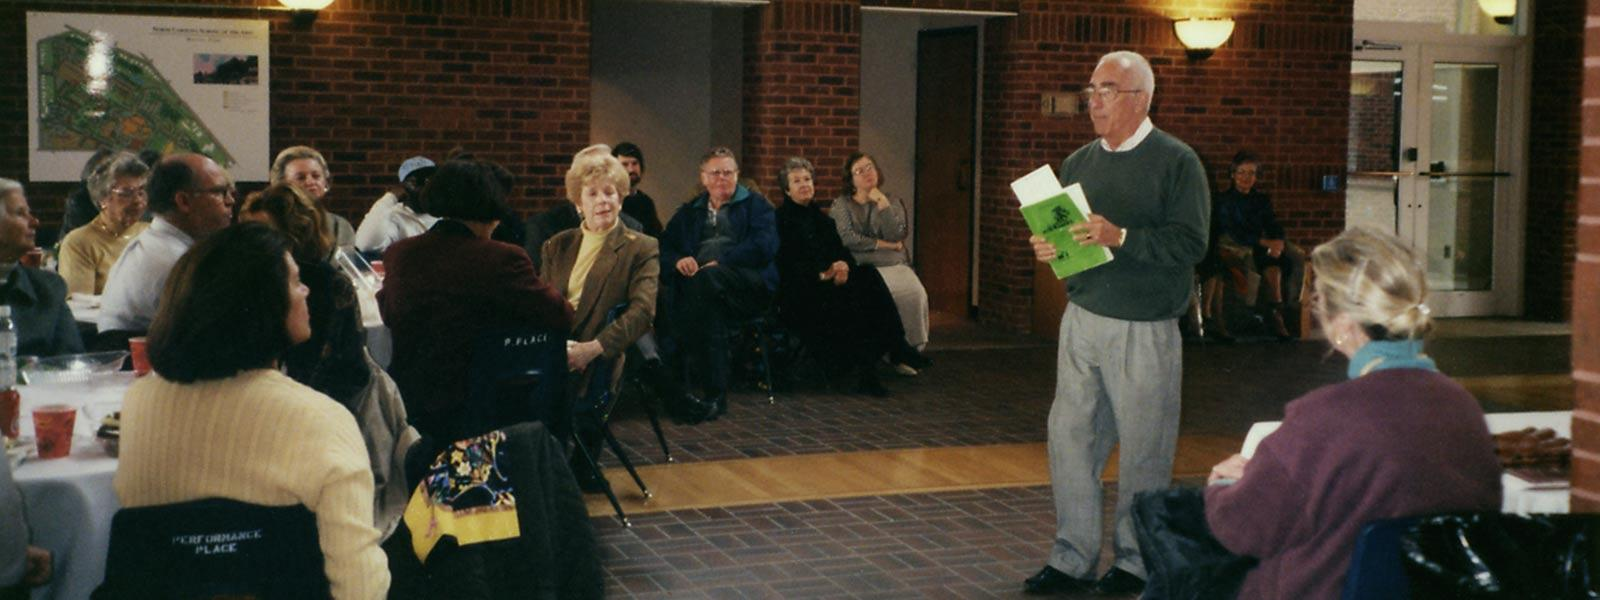 Former Drama Dean Gerald Freedman giving a talk, 1997.